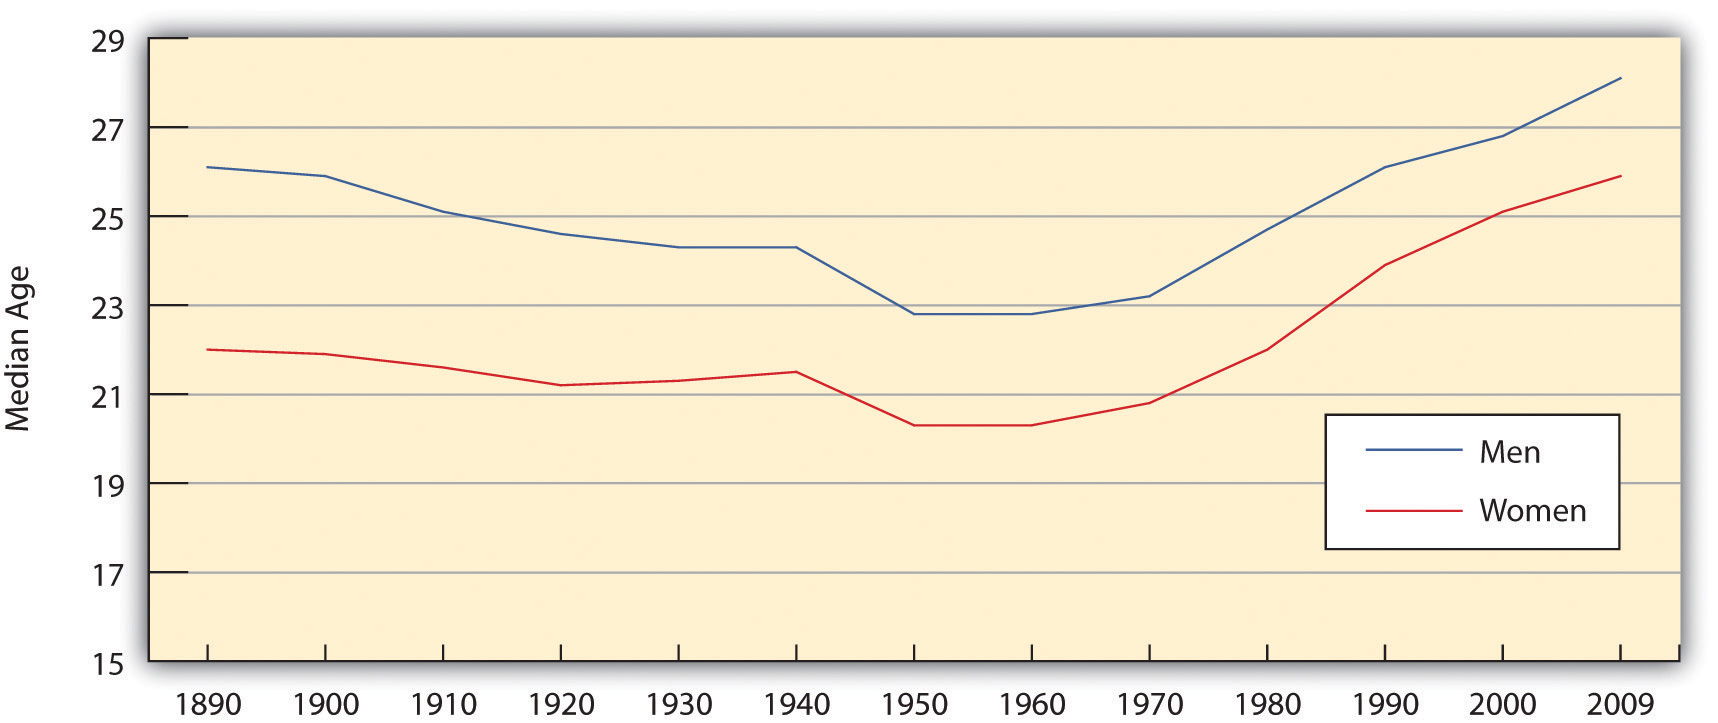 Median Age at First Marriage for Men ad Women shows that men typically marry older than women